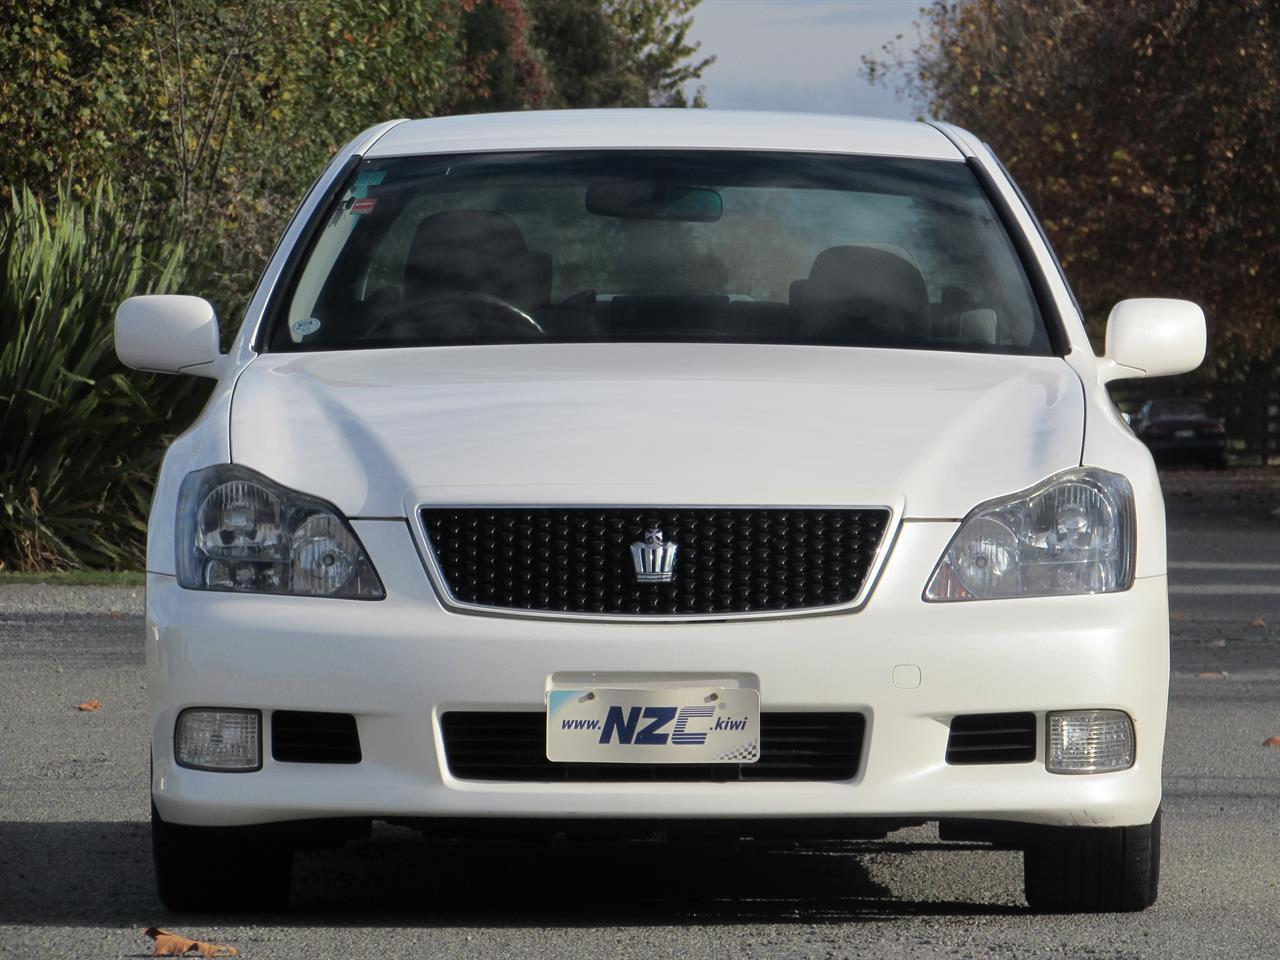 image-2, 2006 Toyota Crown Athlete at Christchurch